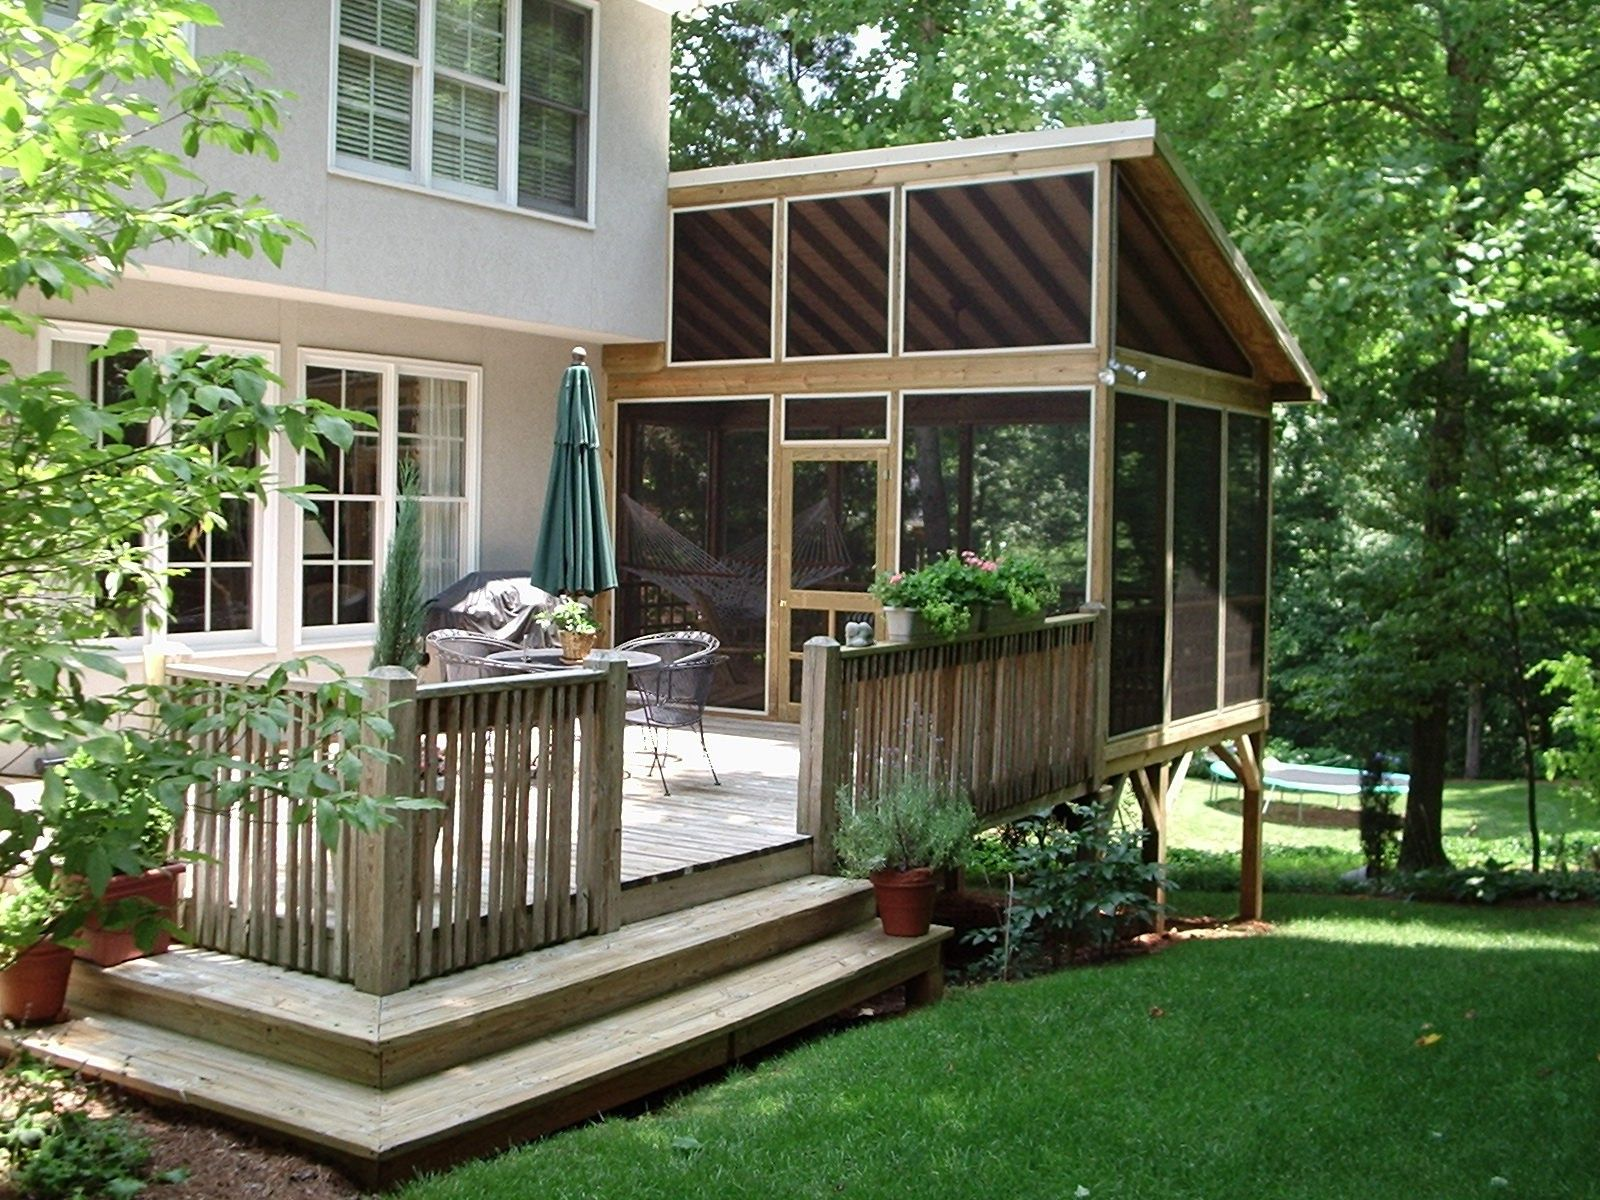 Nice backyard deck ideas to increase your house selling for House plans with decks